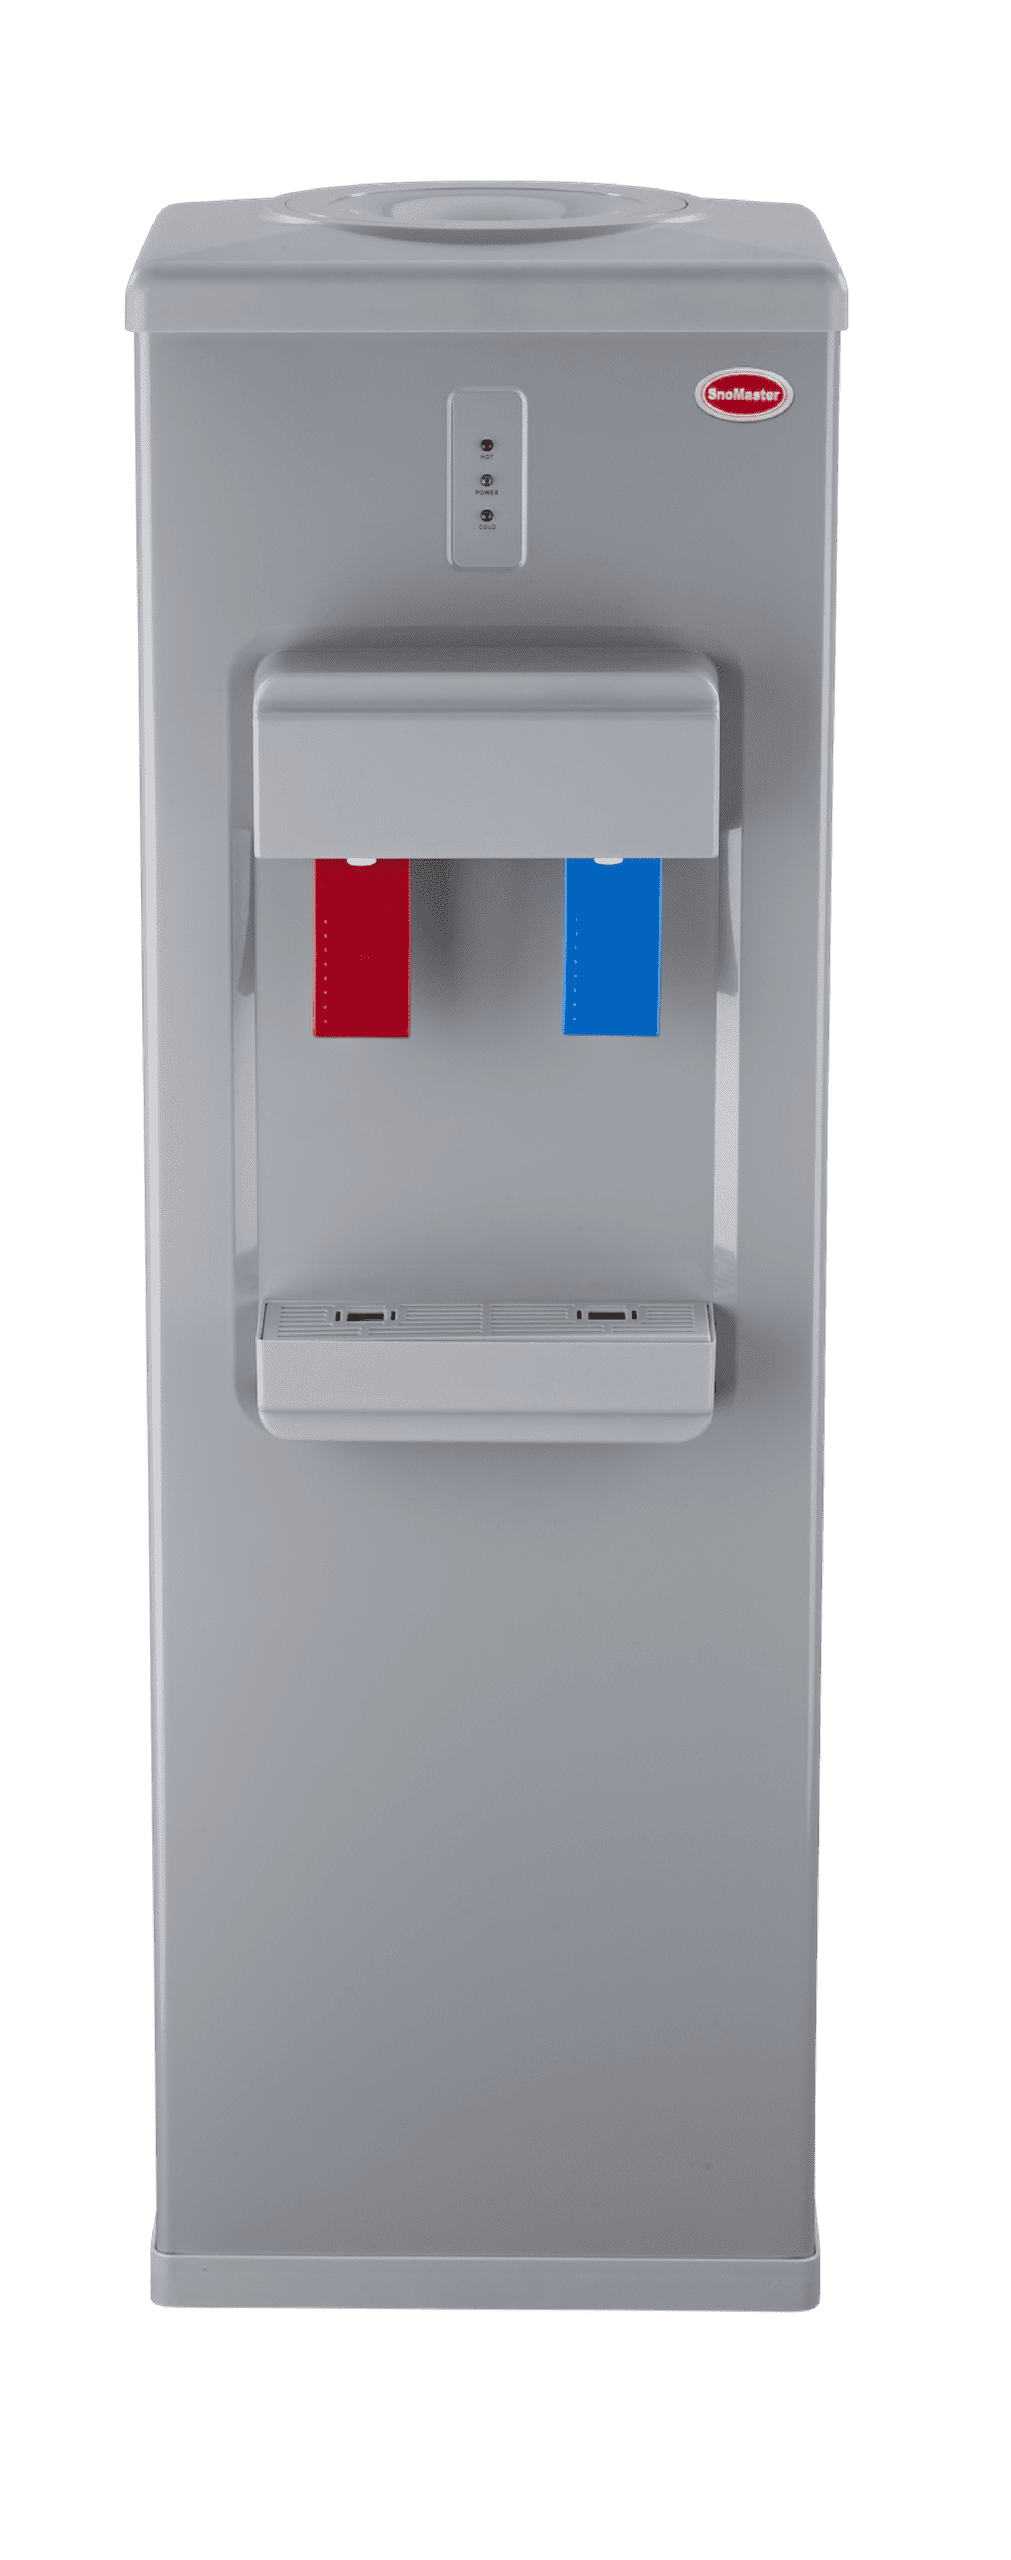 SnoMaster Freestanding Hot and Cold Water Dispenser YLR2-5-16LBS front